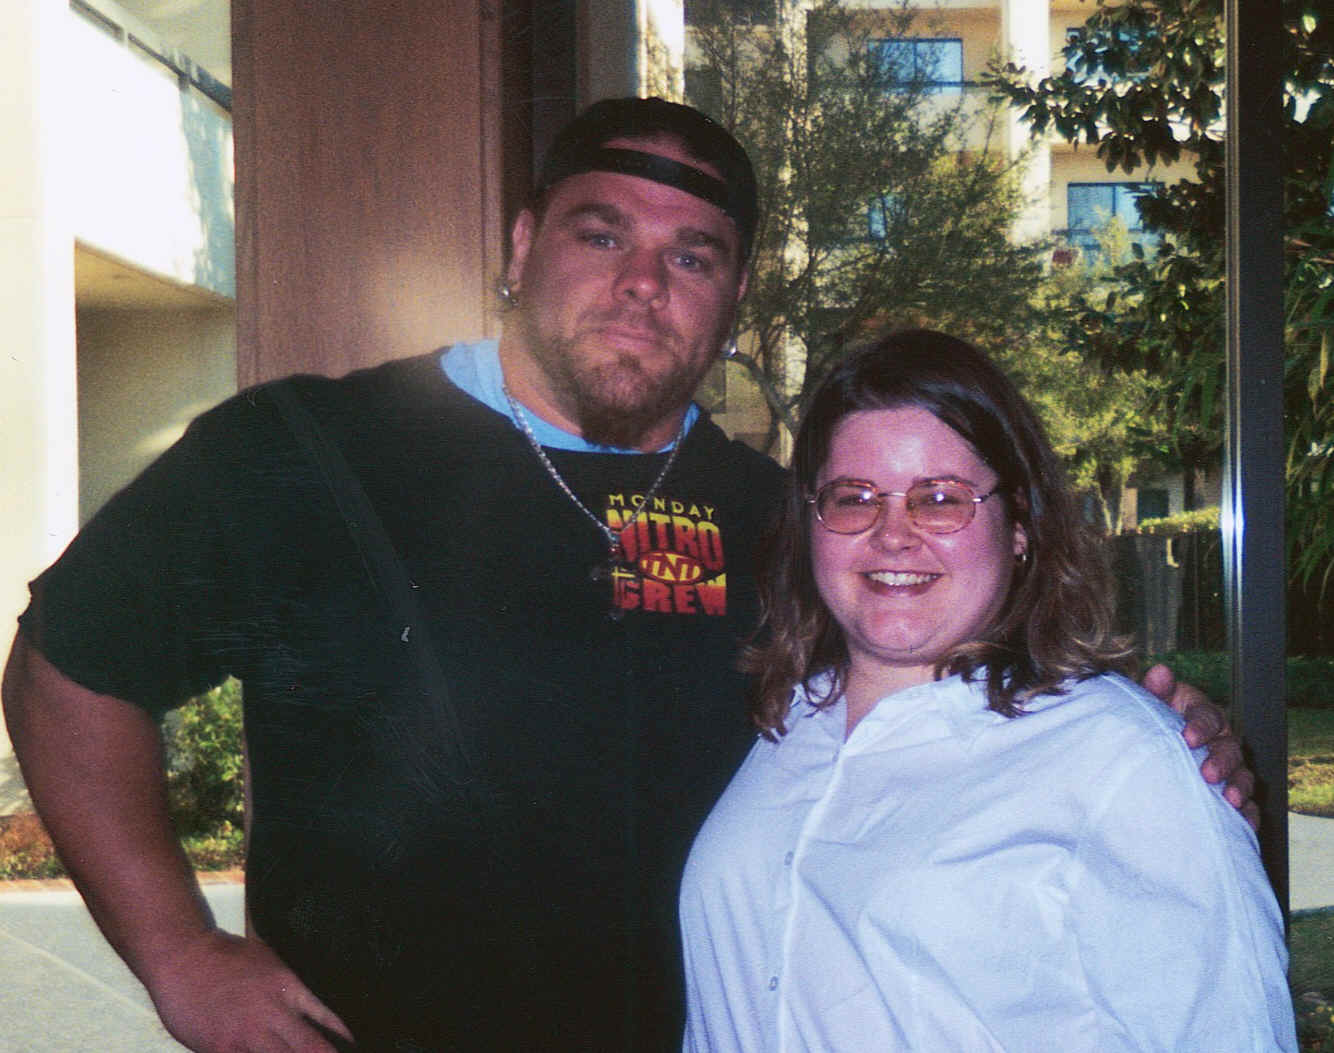 Hugh Morrus and I 2-18-01